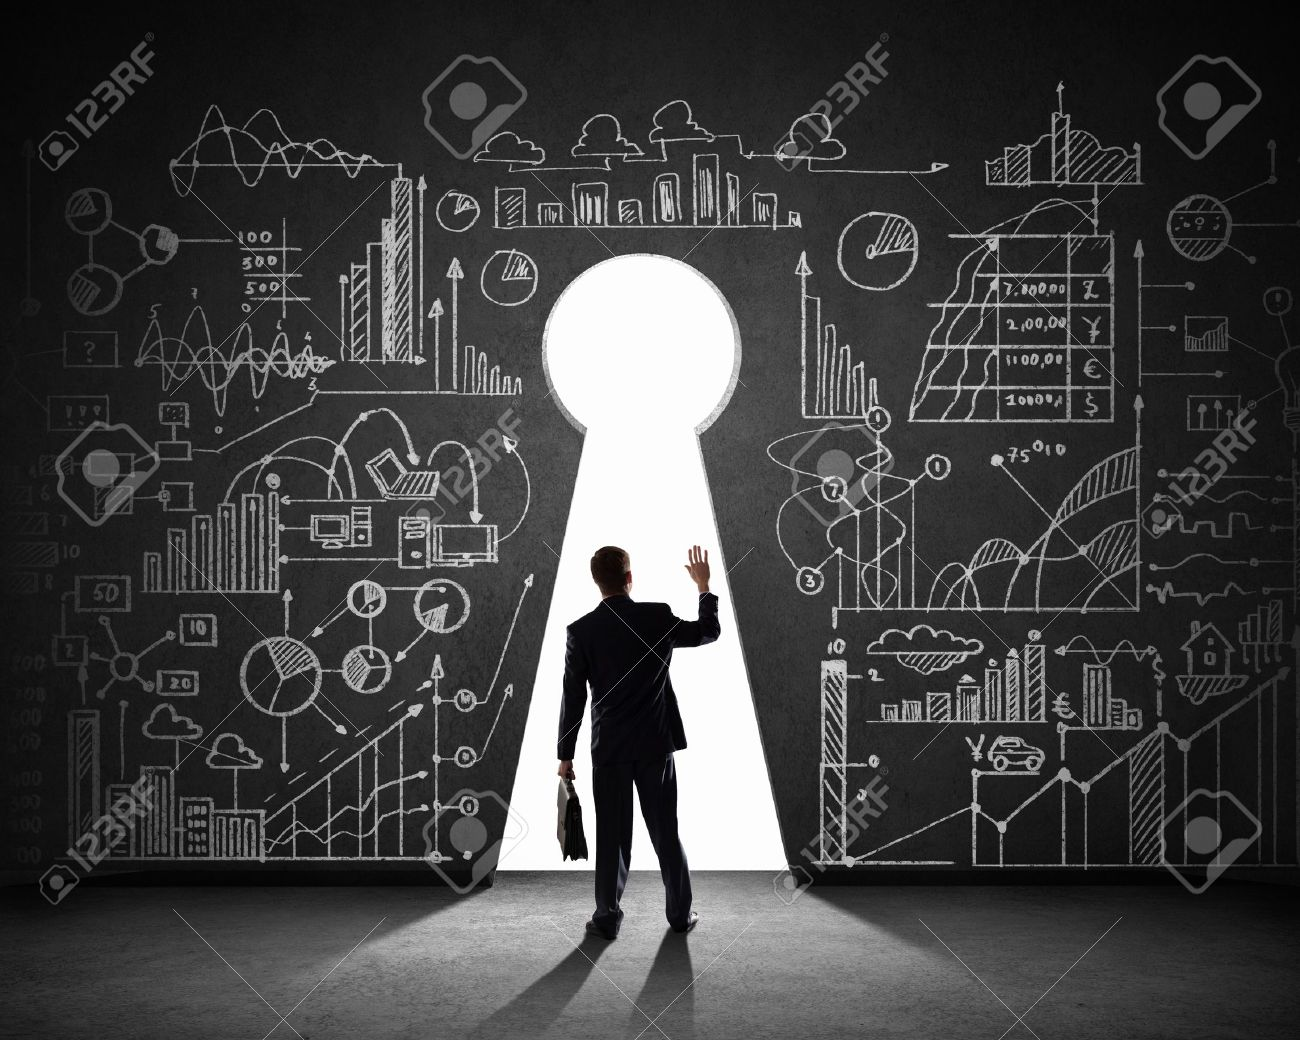 Silhouette of businessman against black wall with key hole - 21644034